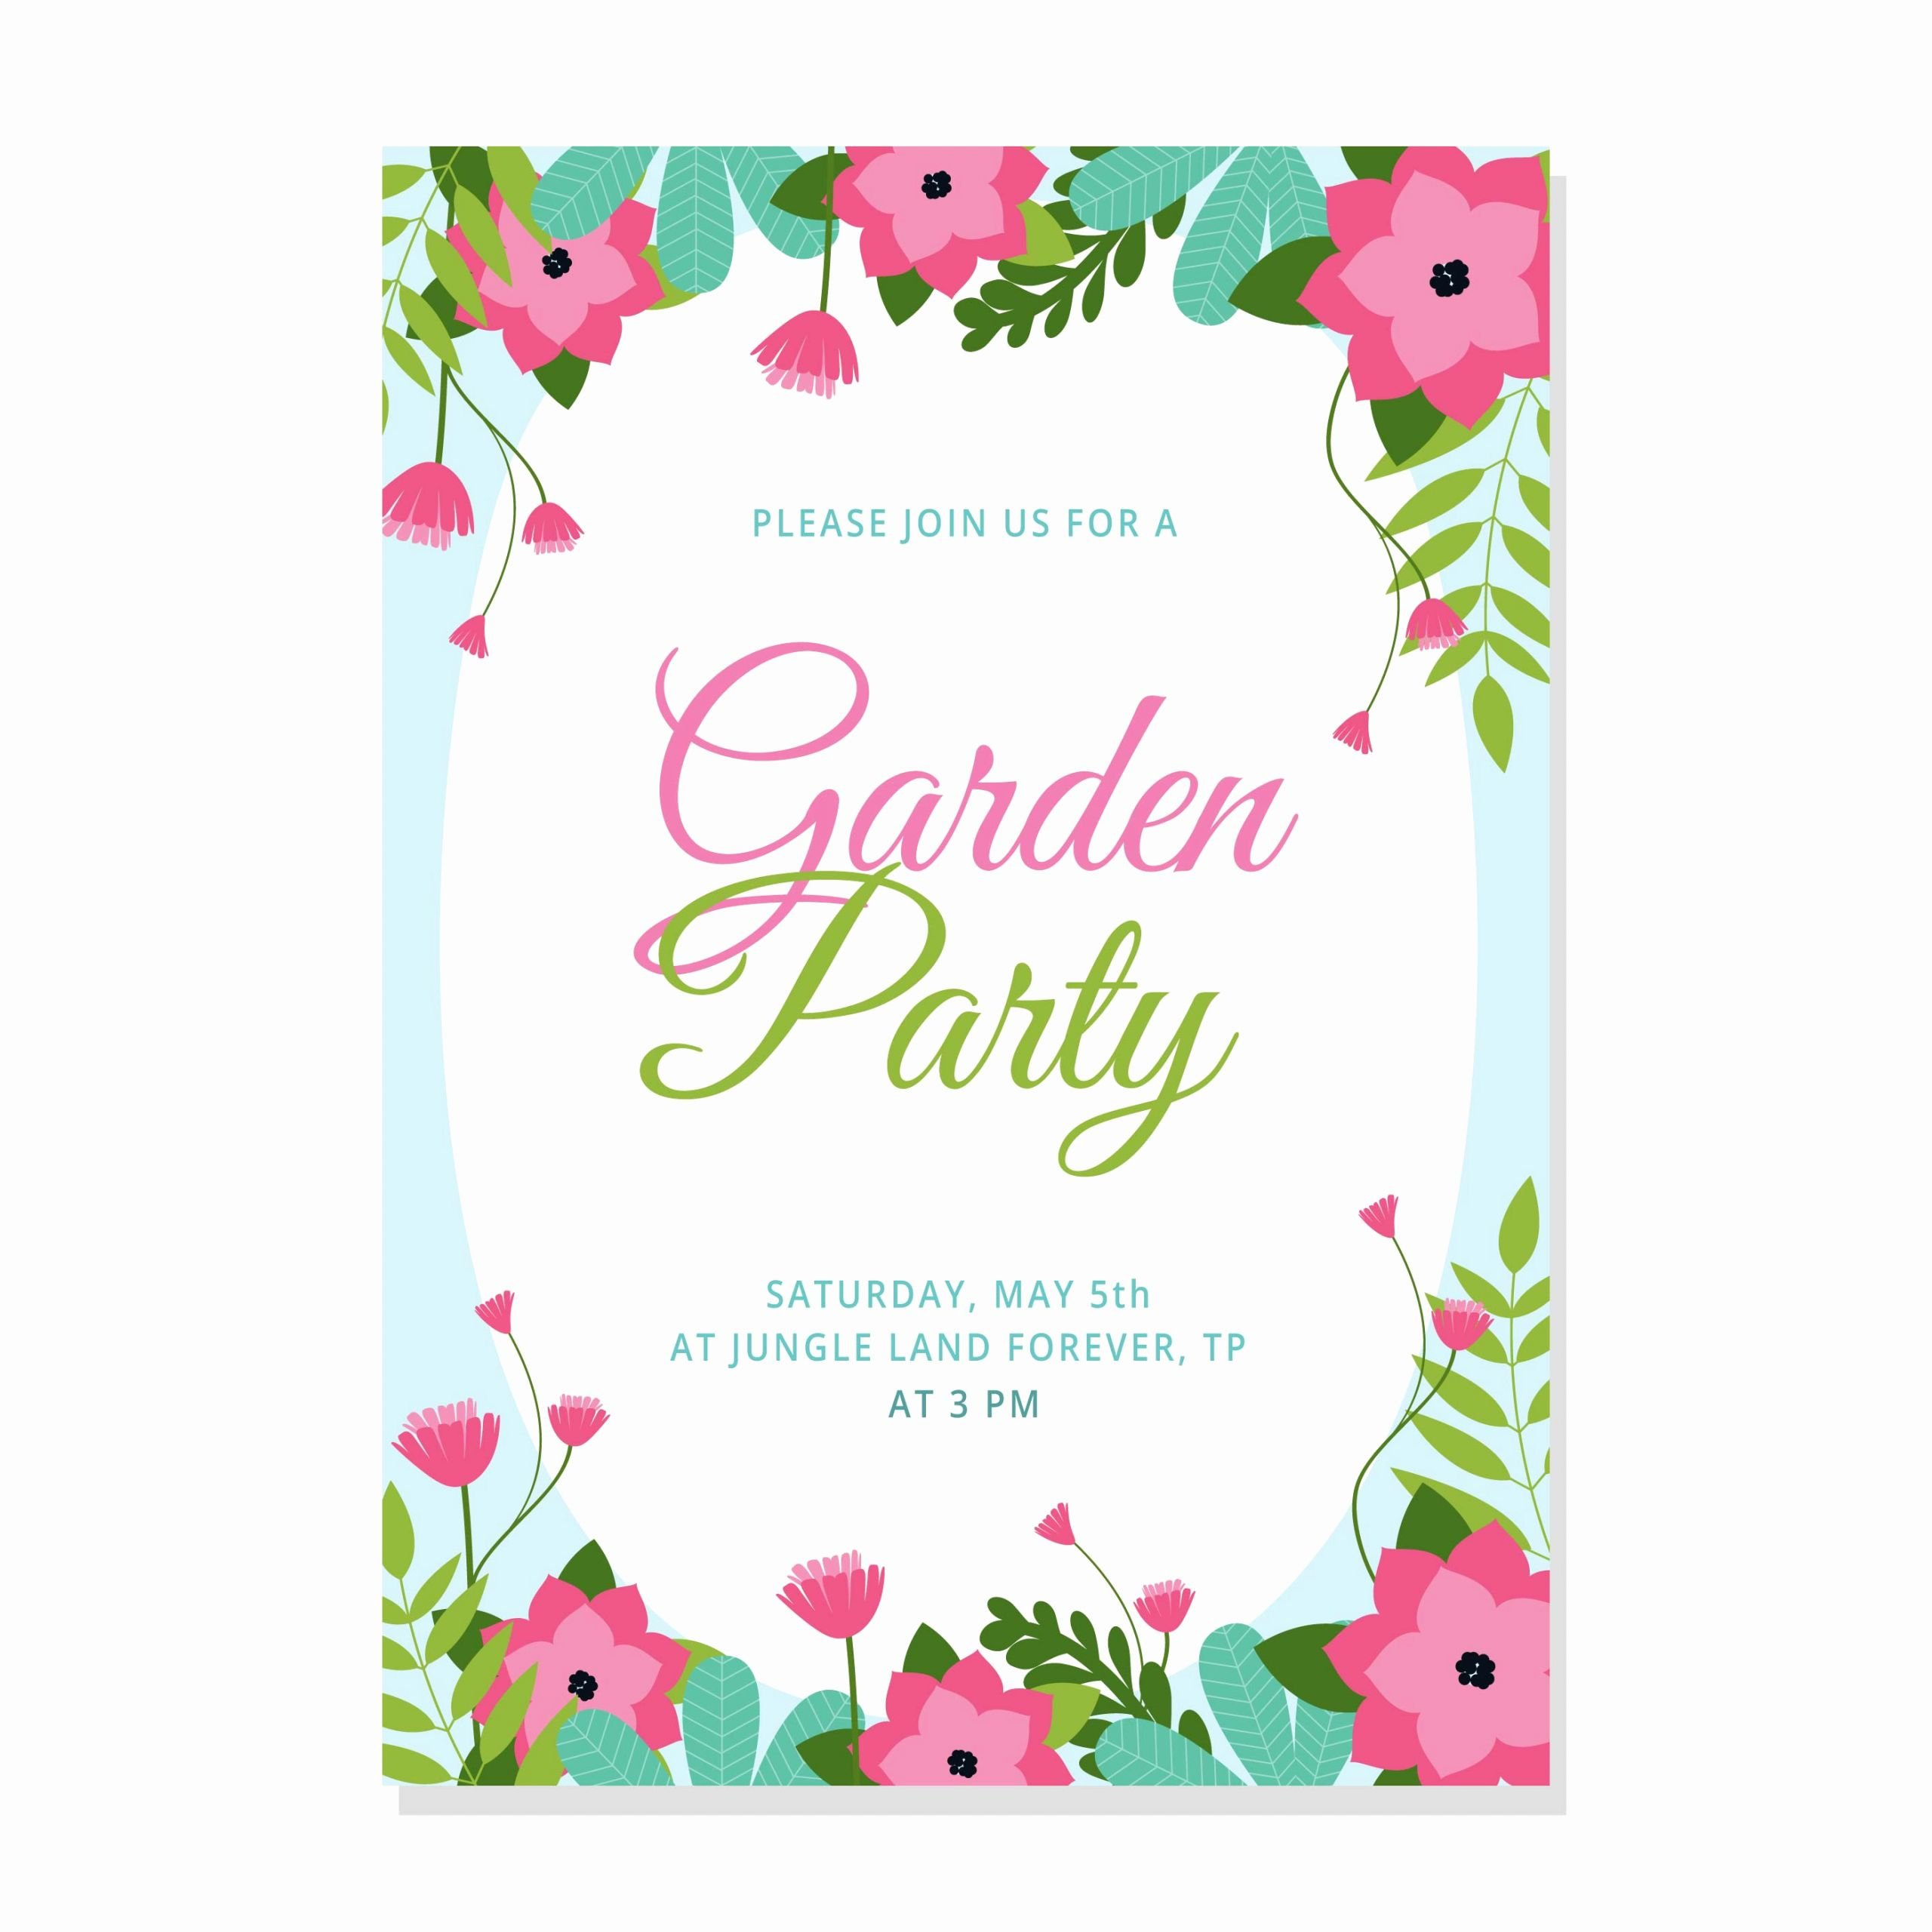 Garden Party Invite Template Lovely Garden Party Invitation Download Free Vectors Clipart